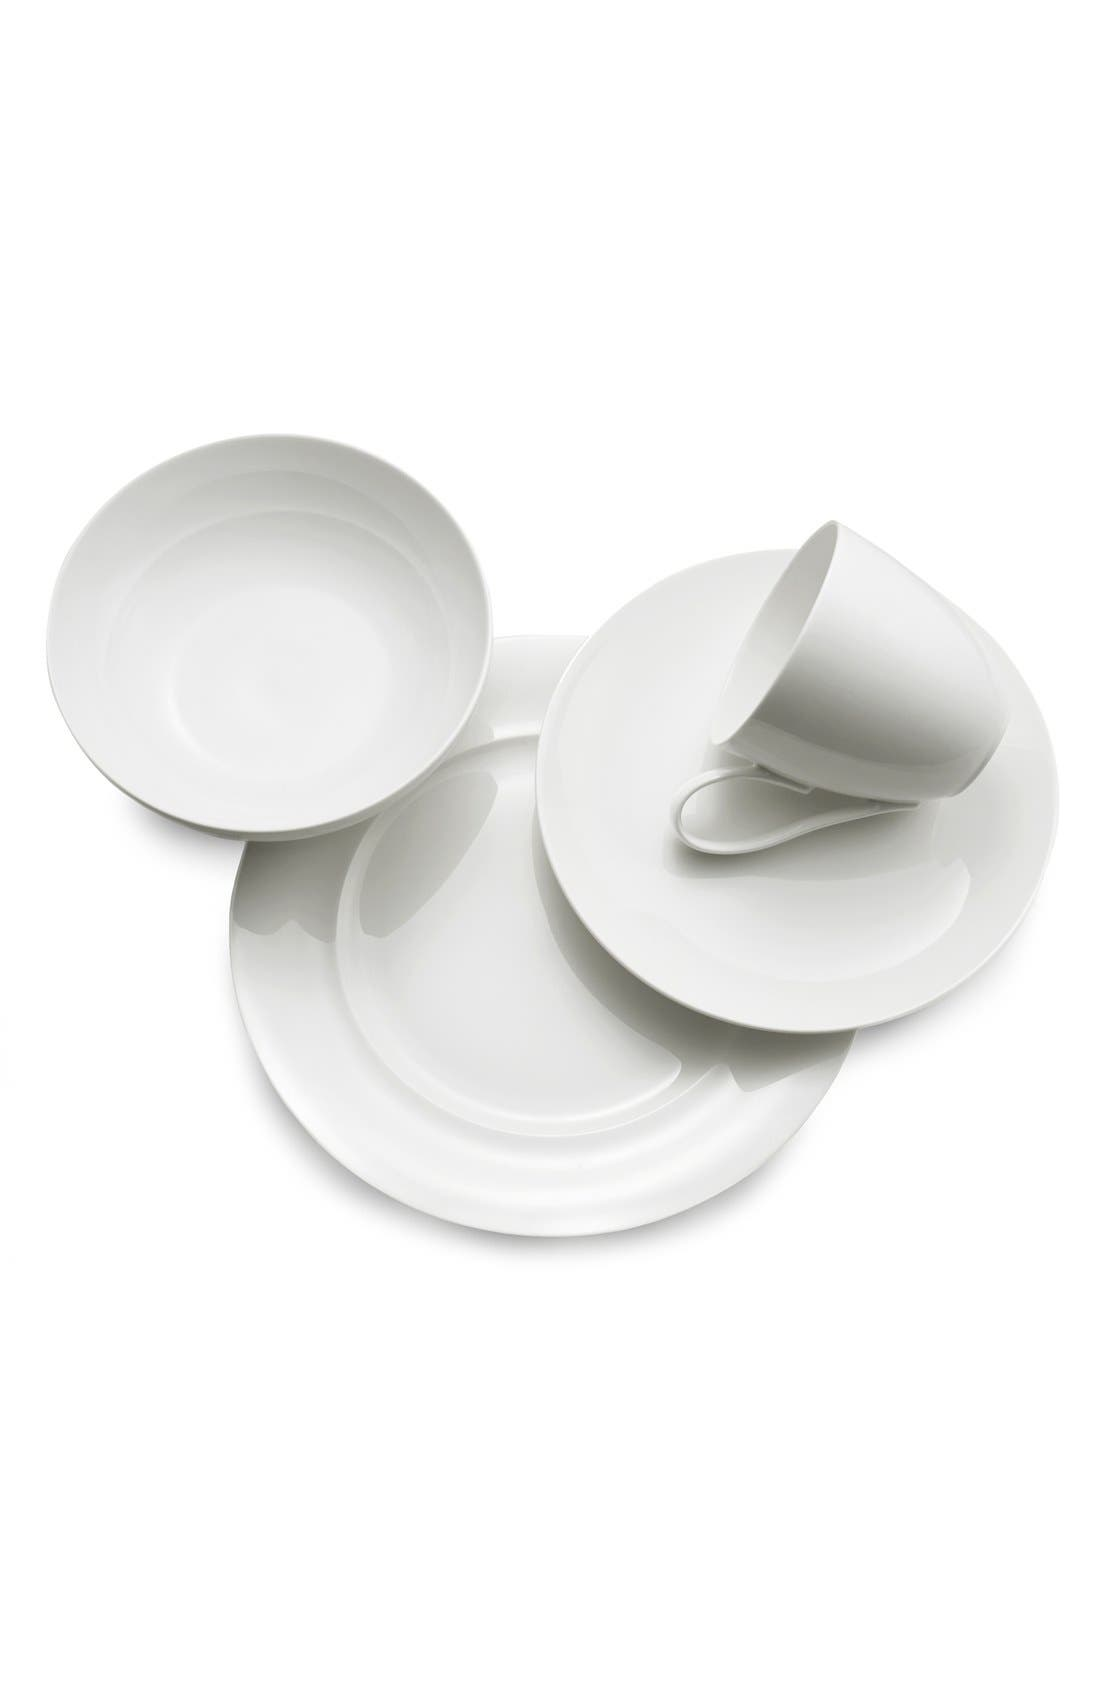 'Skye Collection' 4-Piece Bone China Place Setting,                             Alternate thumbnail 2, color,                             WHITE